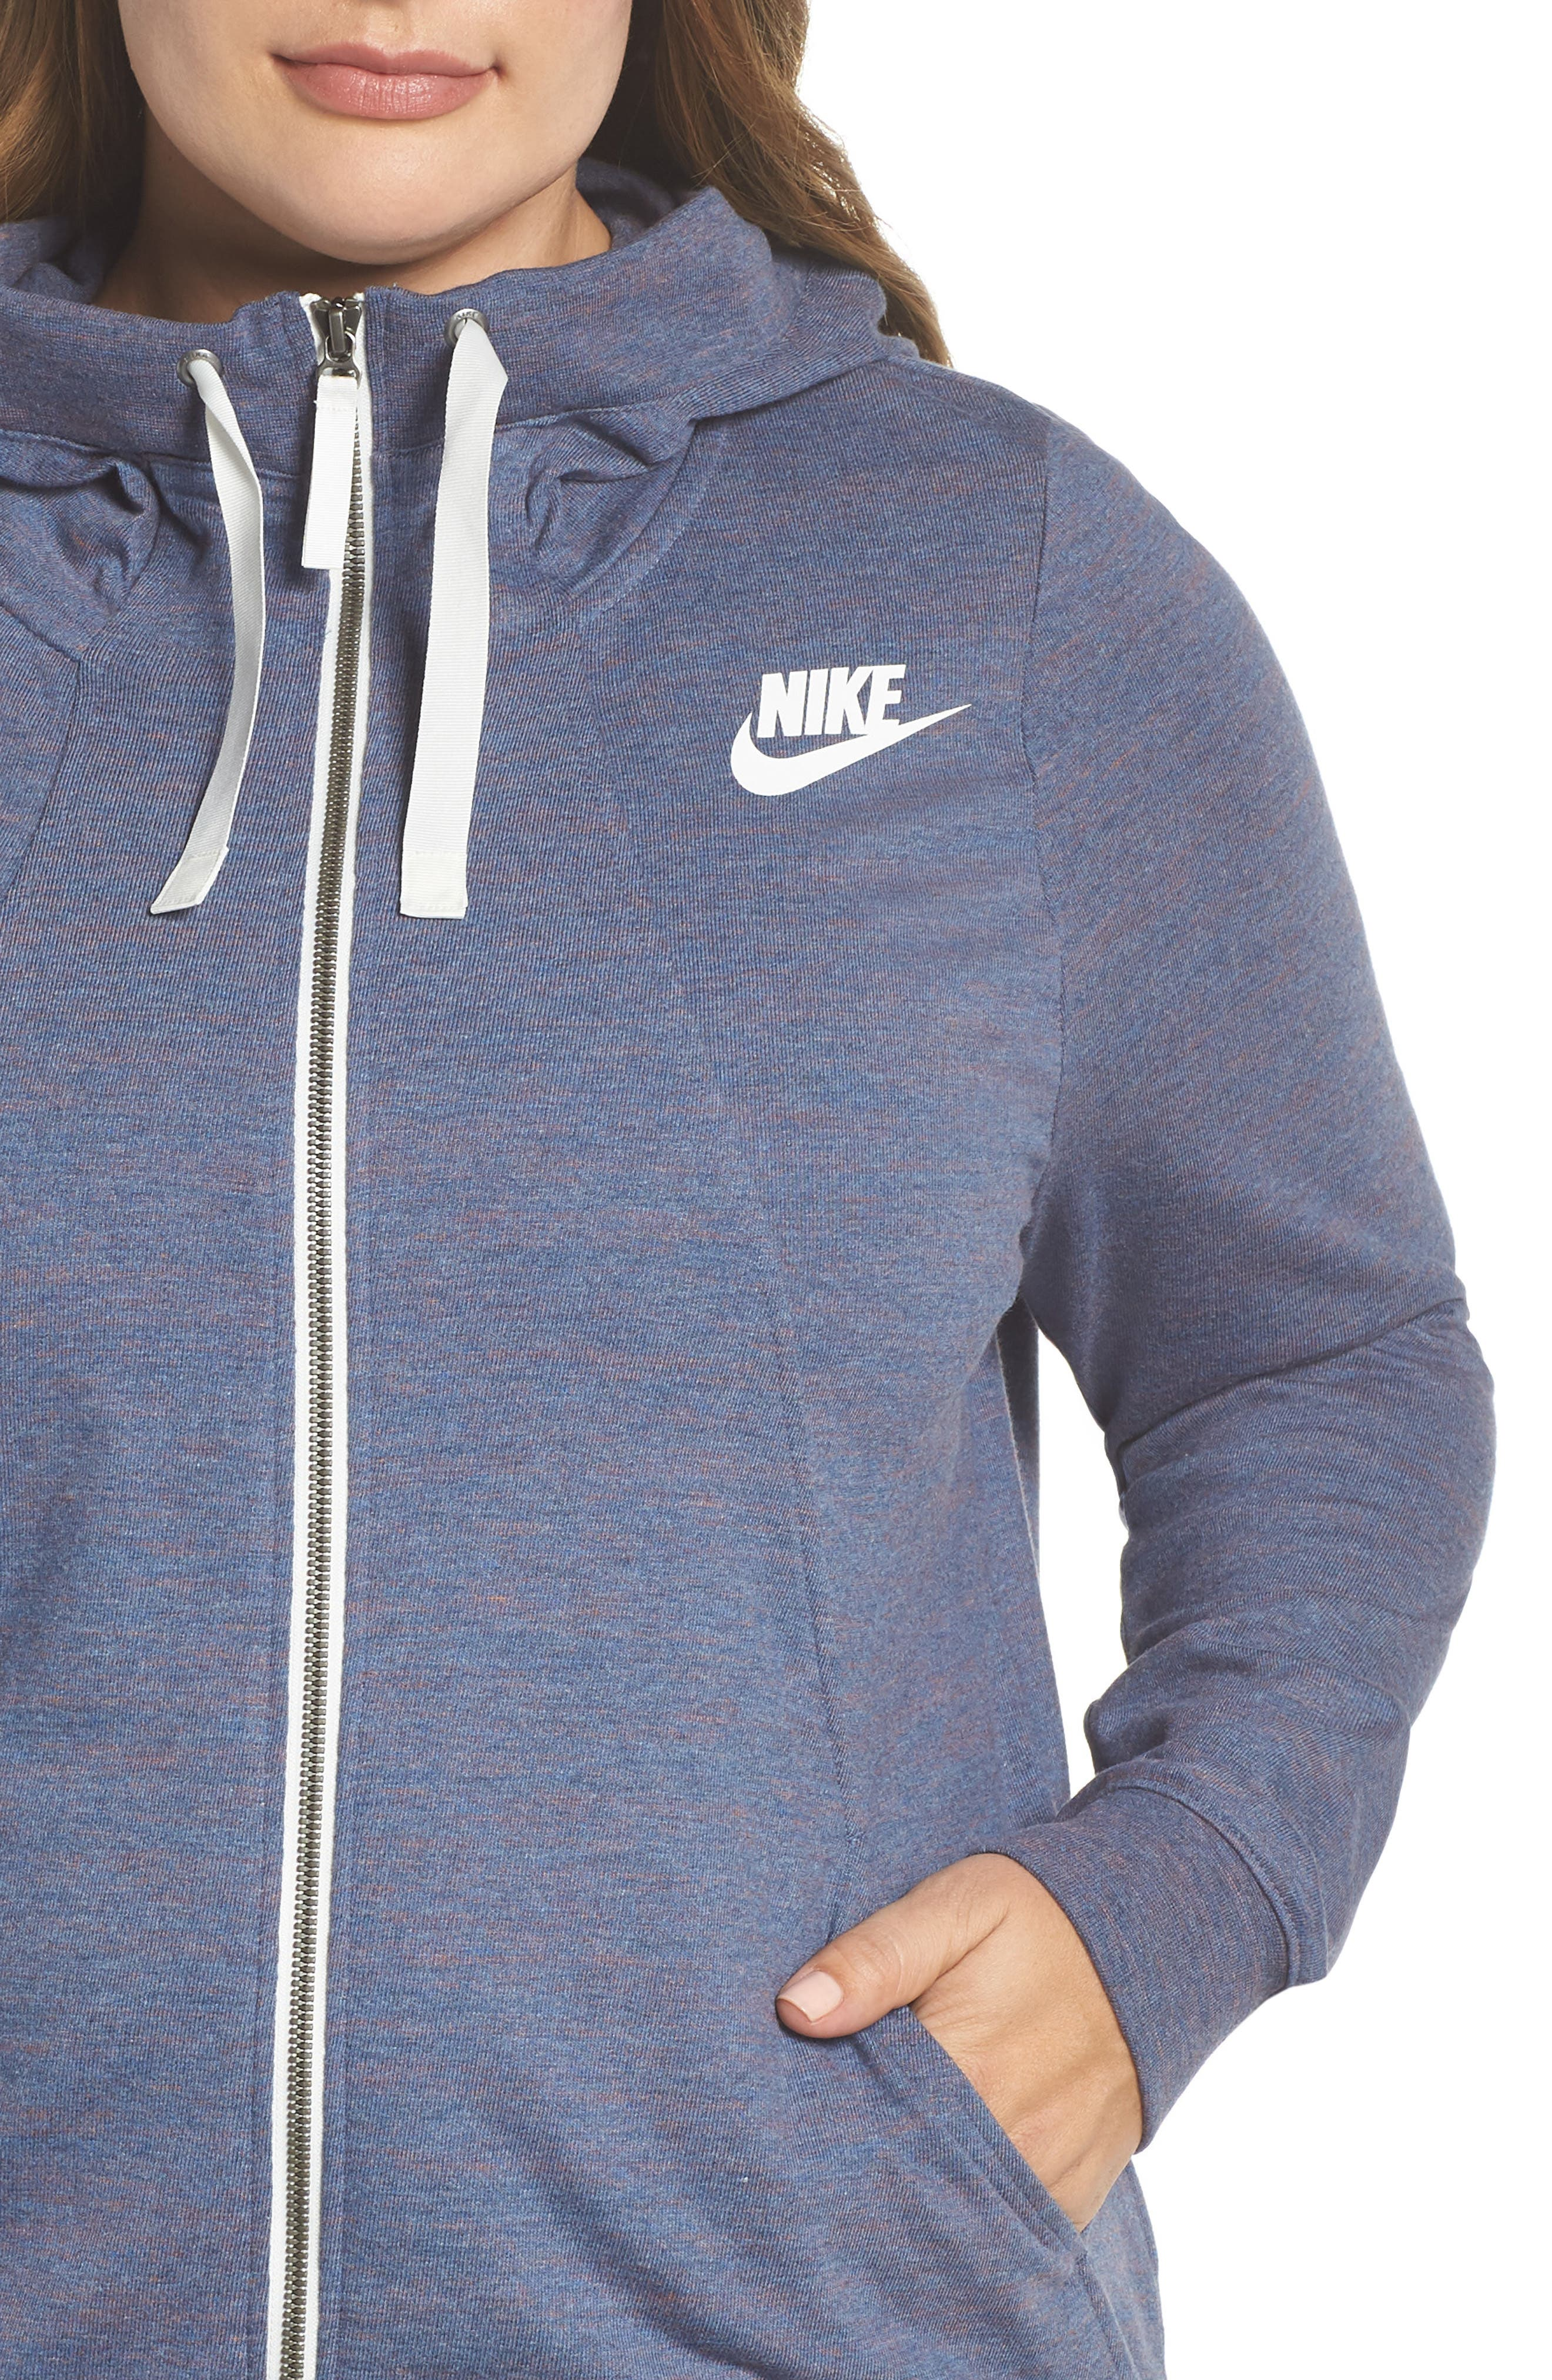 Gym Zip Hoodie,                             Alternate thumbnail 4, color,                             Diffused Blue/ Heather/ Sail